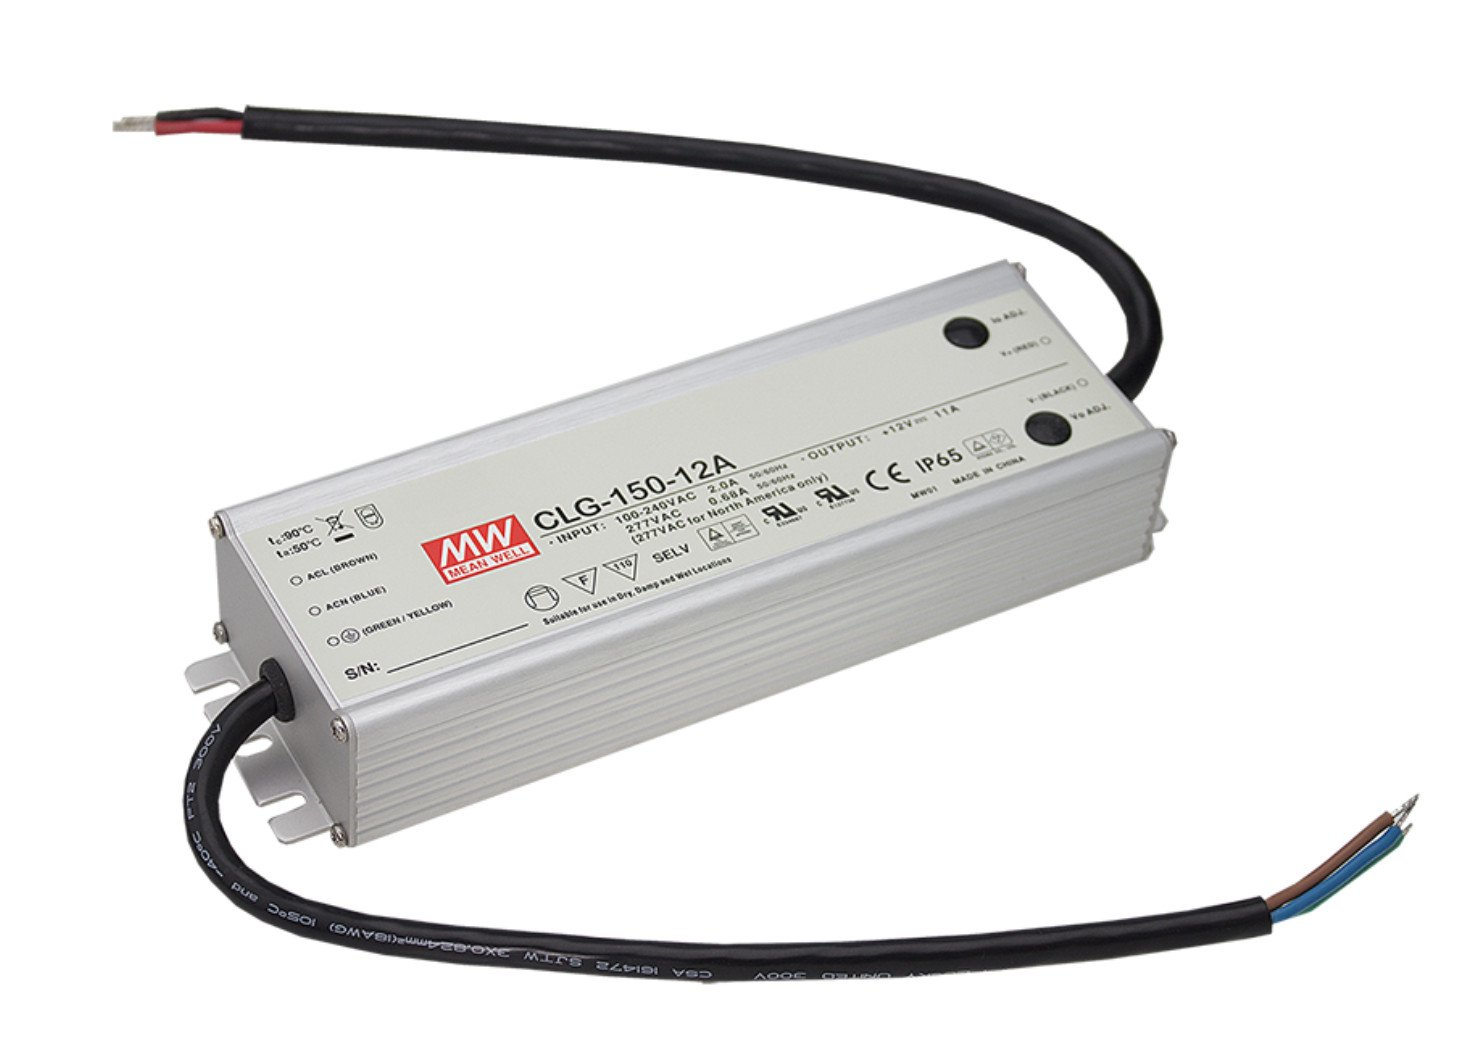 MEAN WELL original CLG-150-12A 12V 11A meanwell CLG-150 12V 132W Single Output LED Switching Power Supply